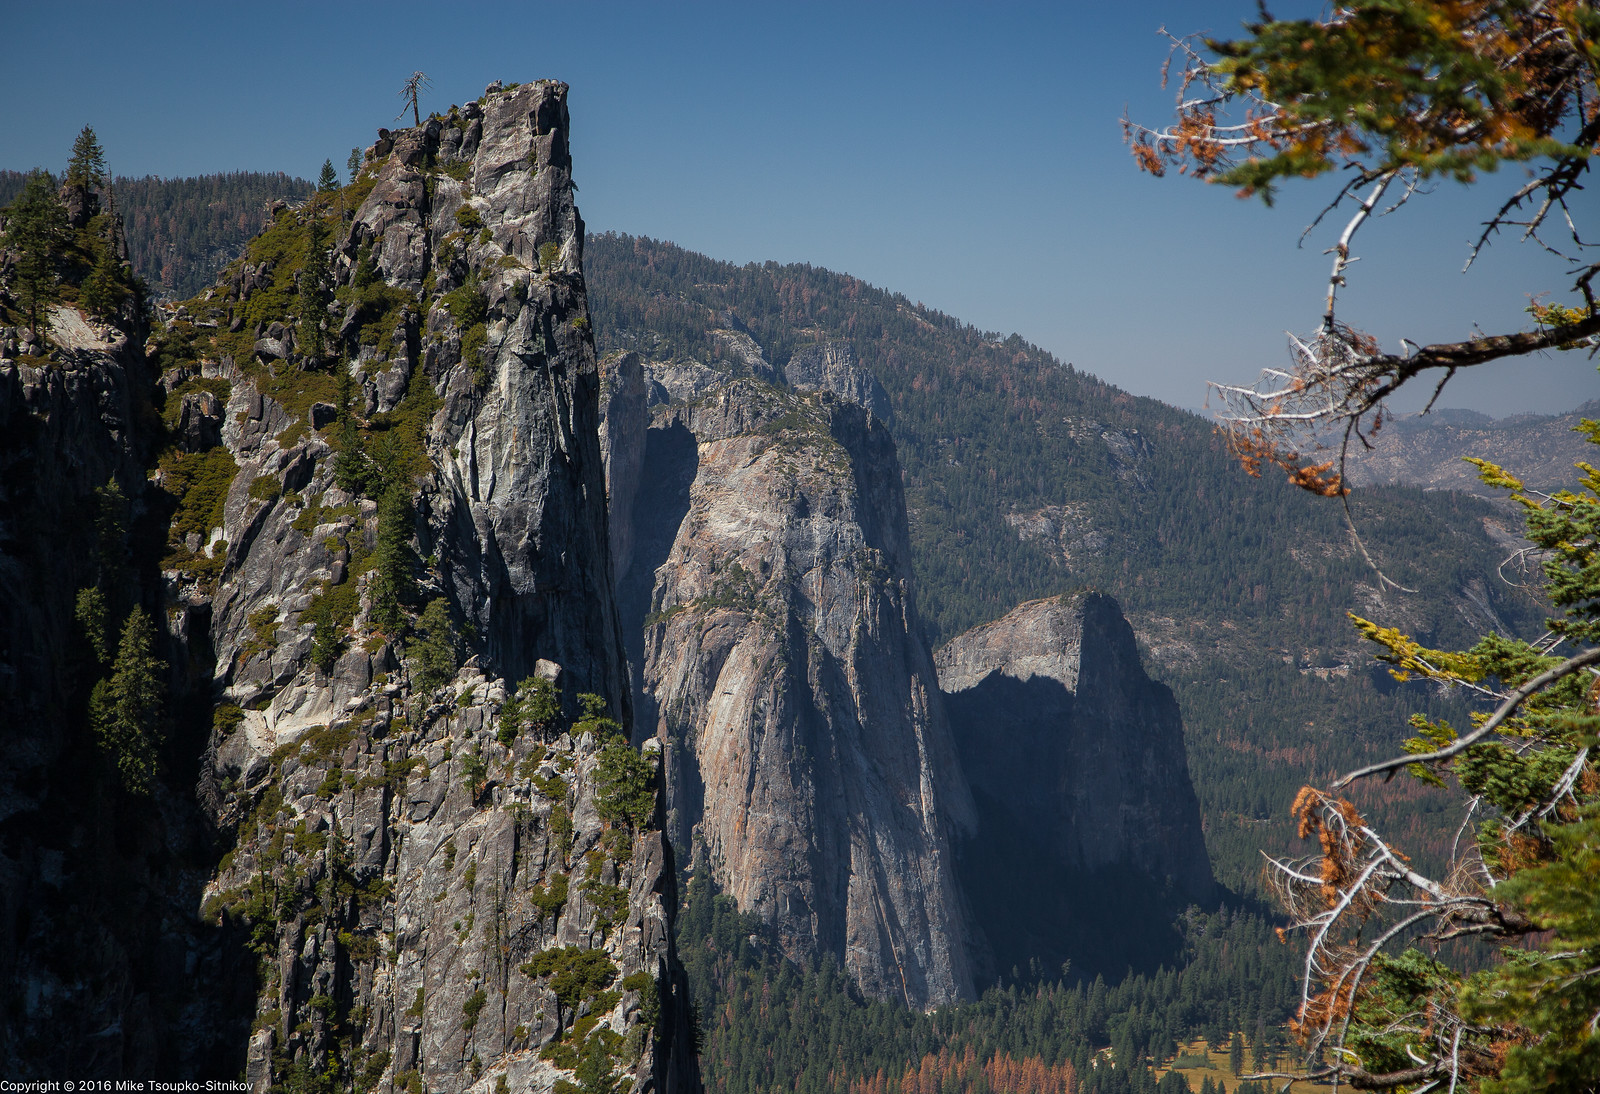 A View from Four Mile Trail in Yosemite